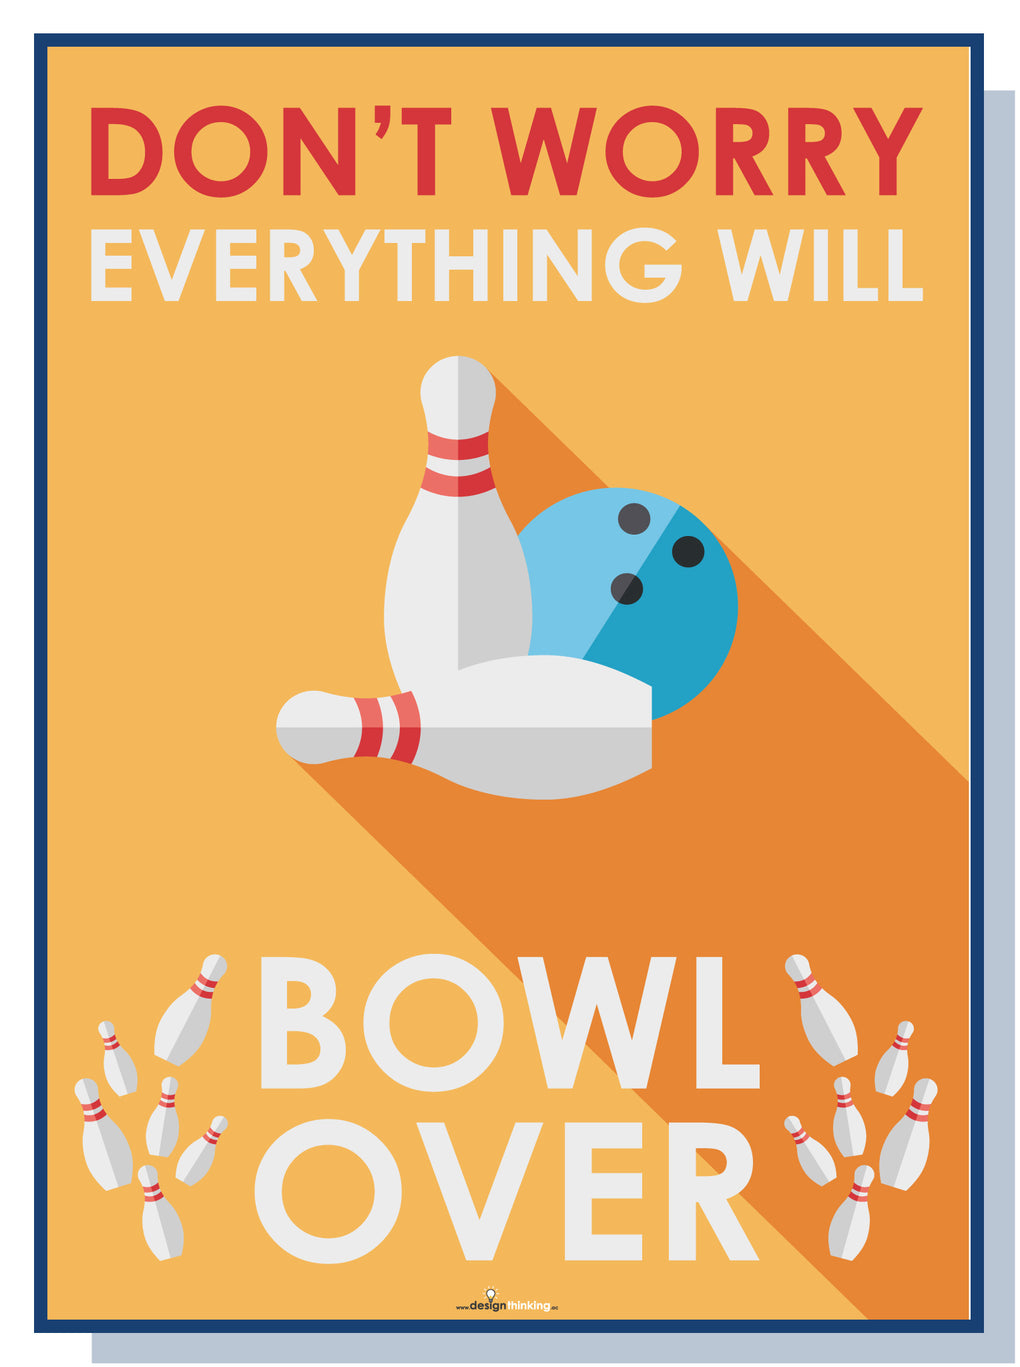 Bowl over...